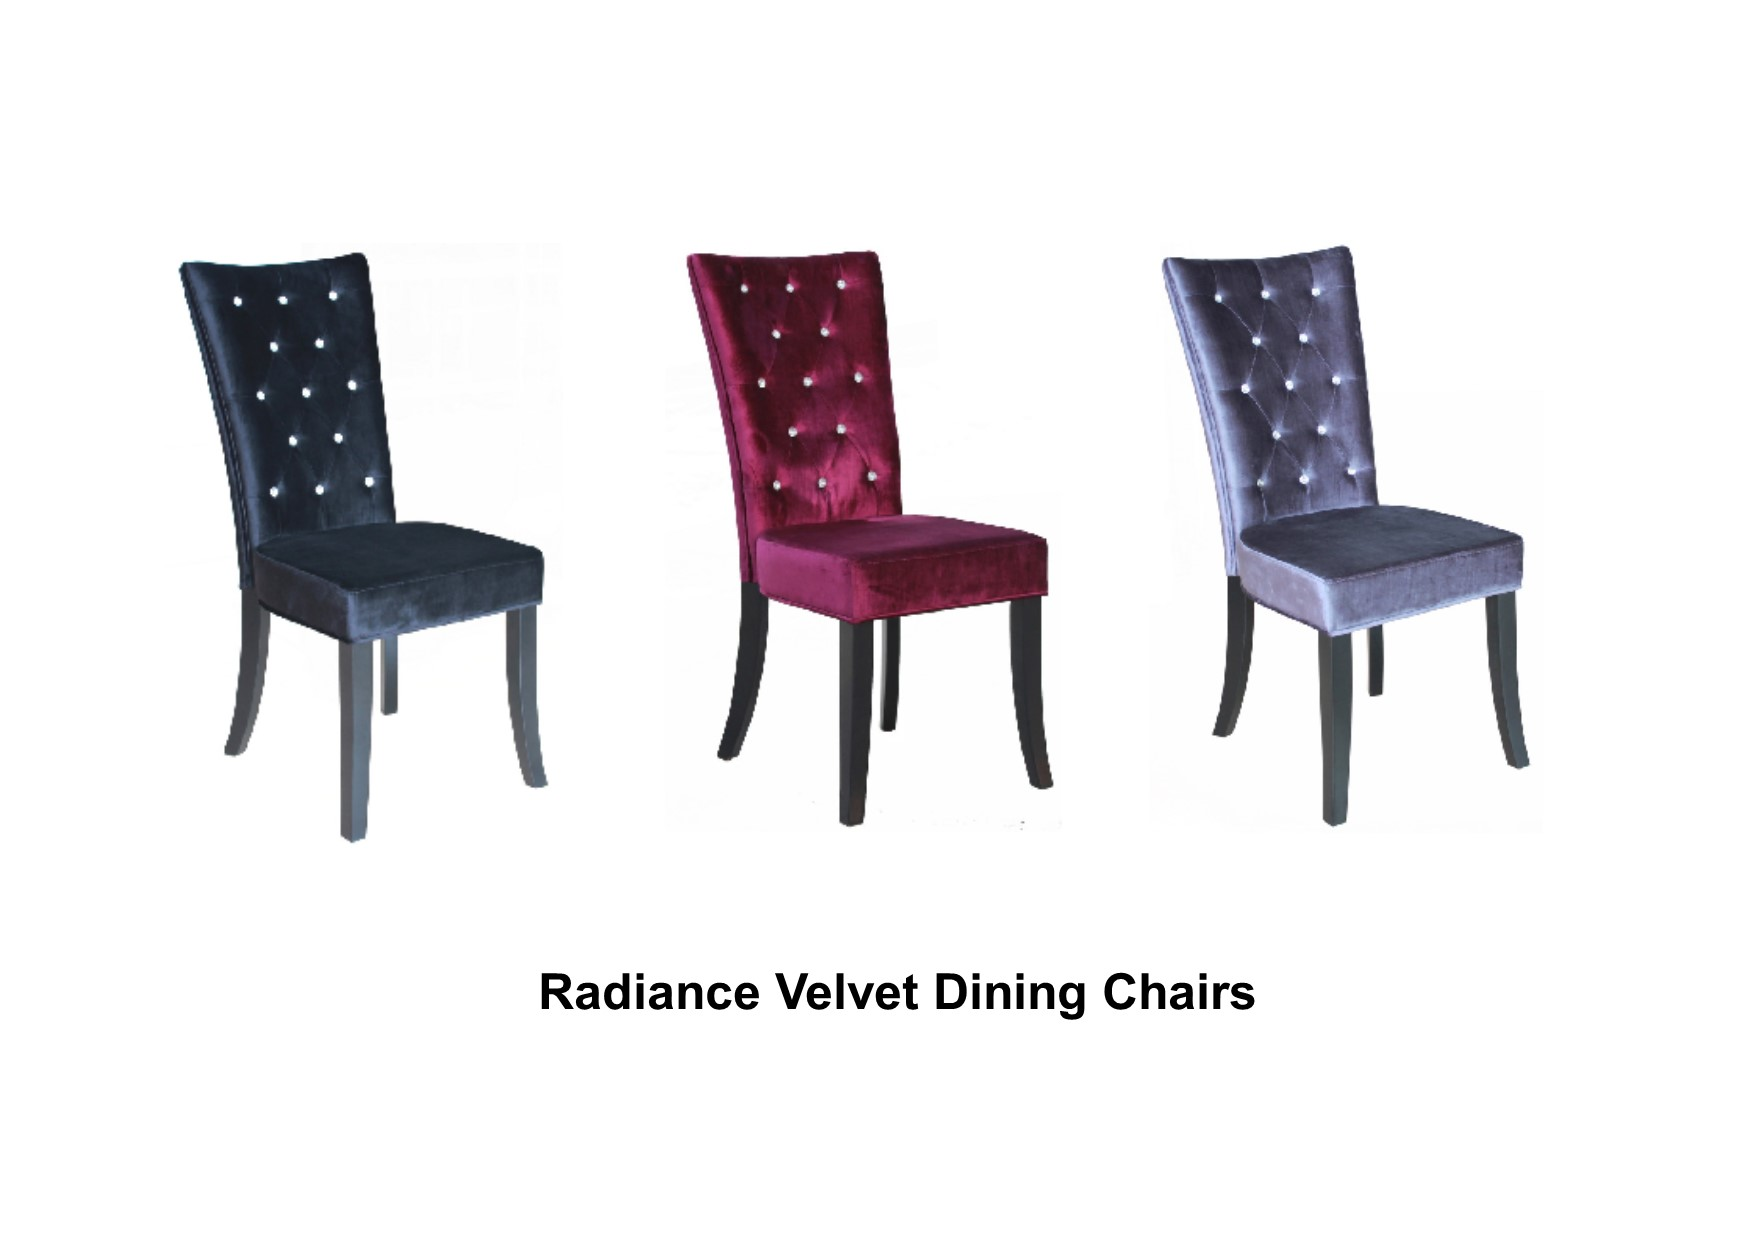 purple crushed velvet bedroom chair cushion covers amazon pair of radiance dining chairs and diamantes